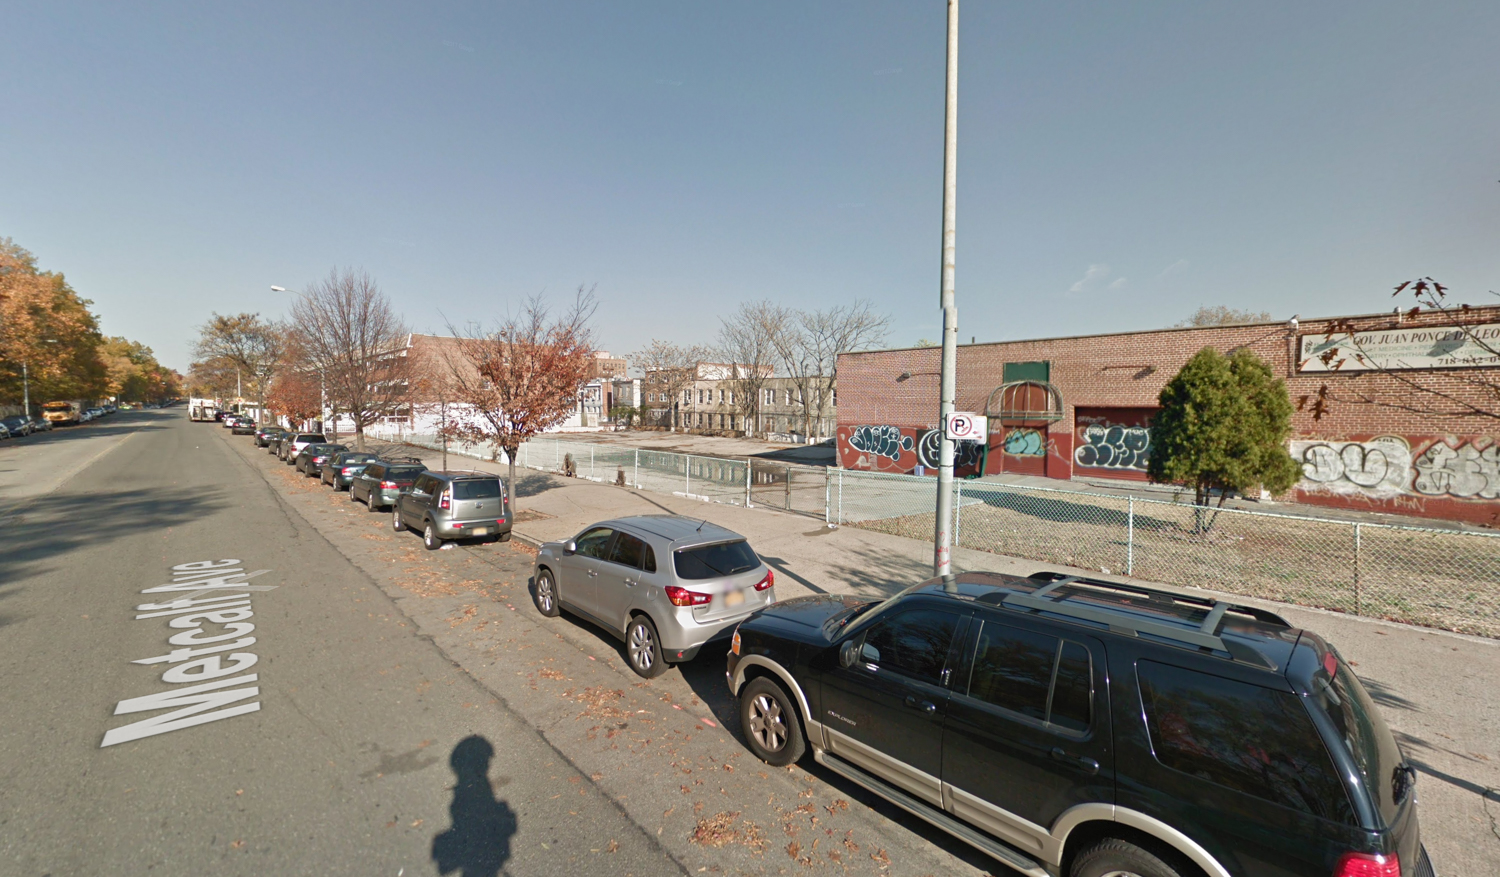 1661 Westchester Avenue, via Google Maps